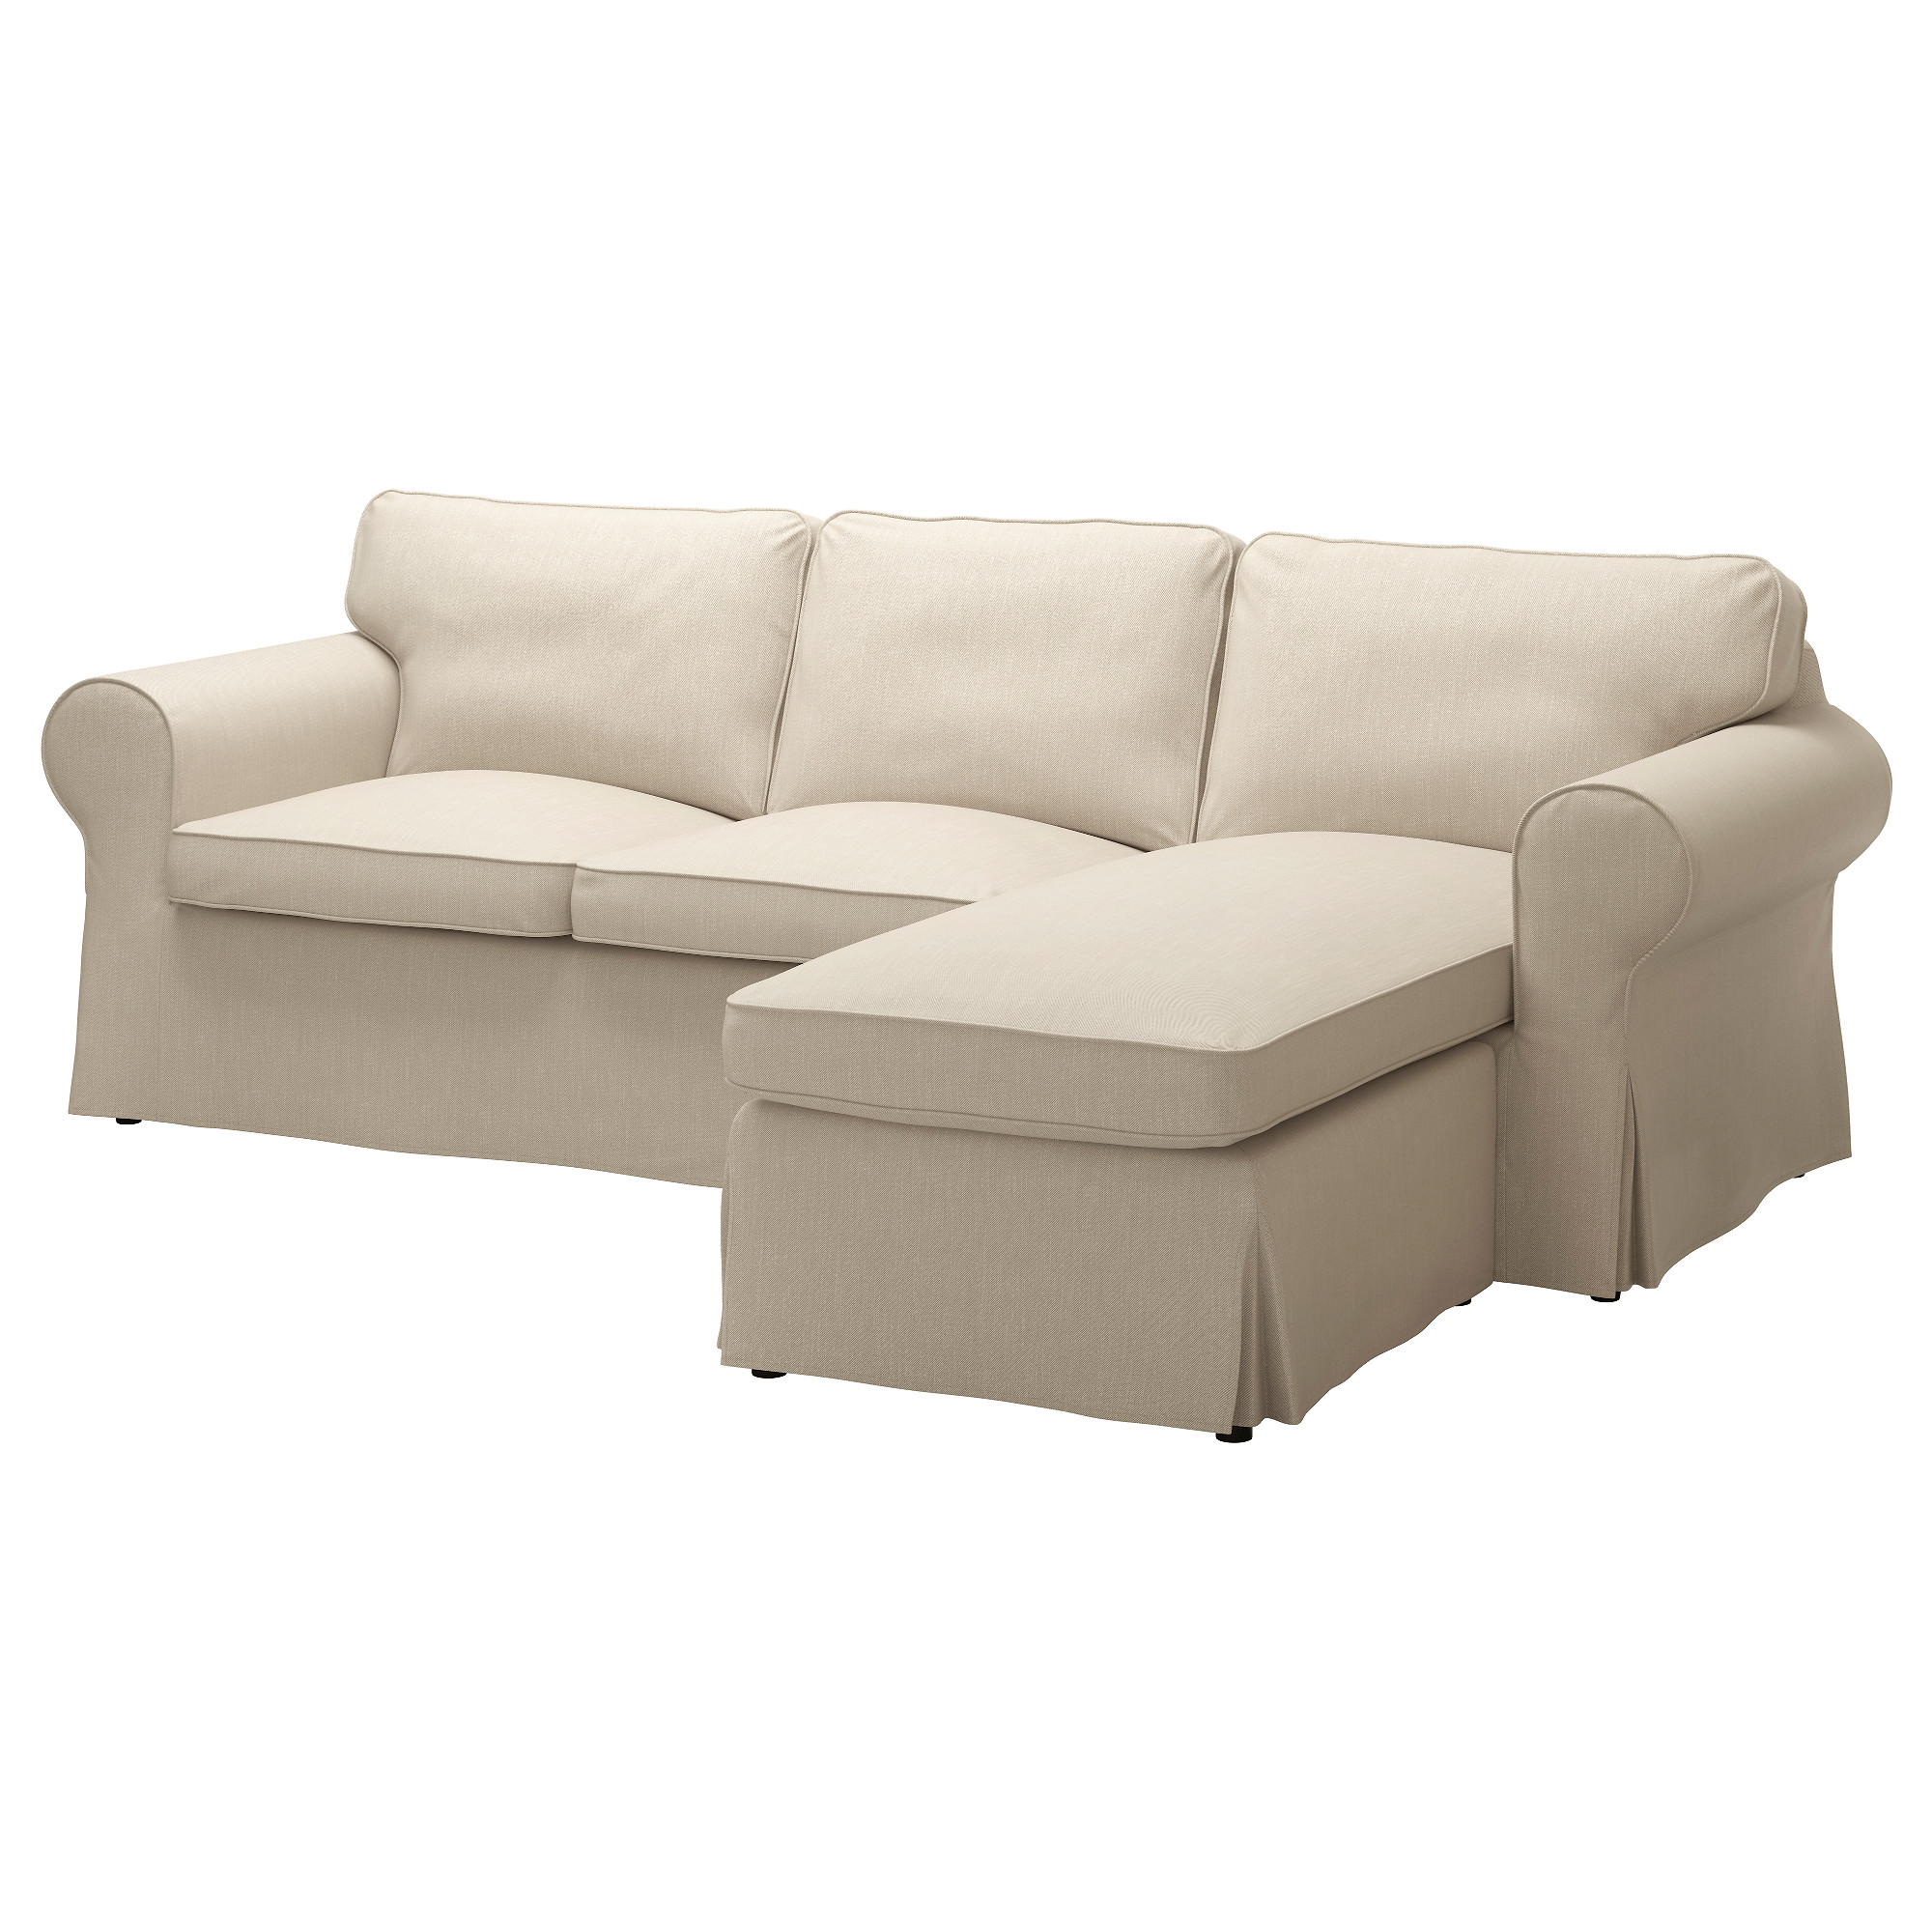 sc 1 st  Ikea : ikea sofa bed chaise - Sectionals, Sofas & Couches